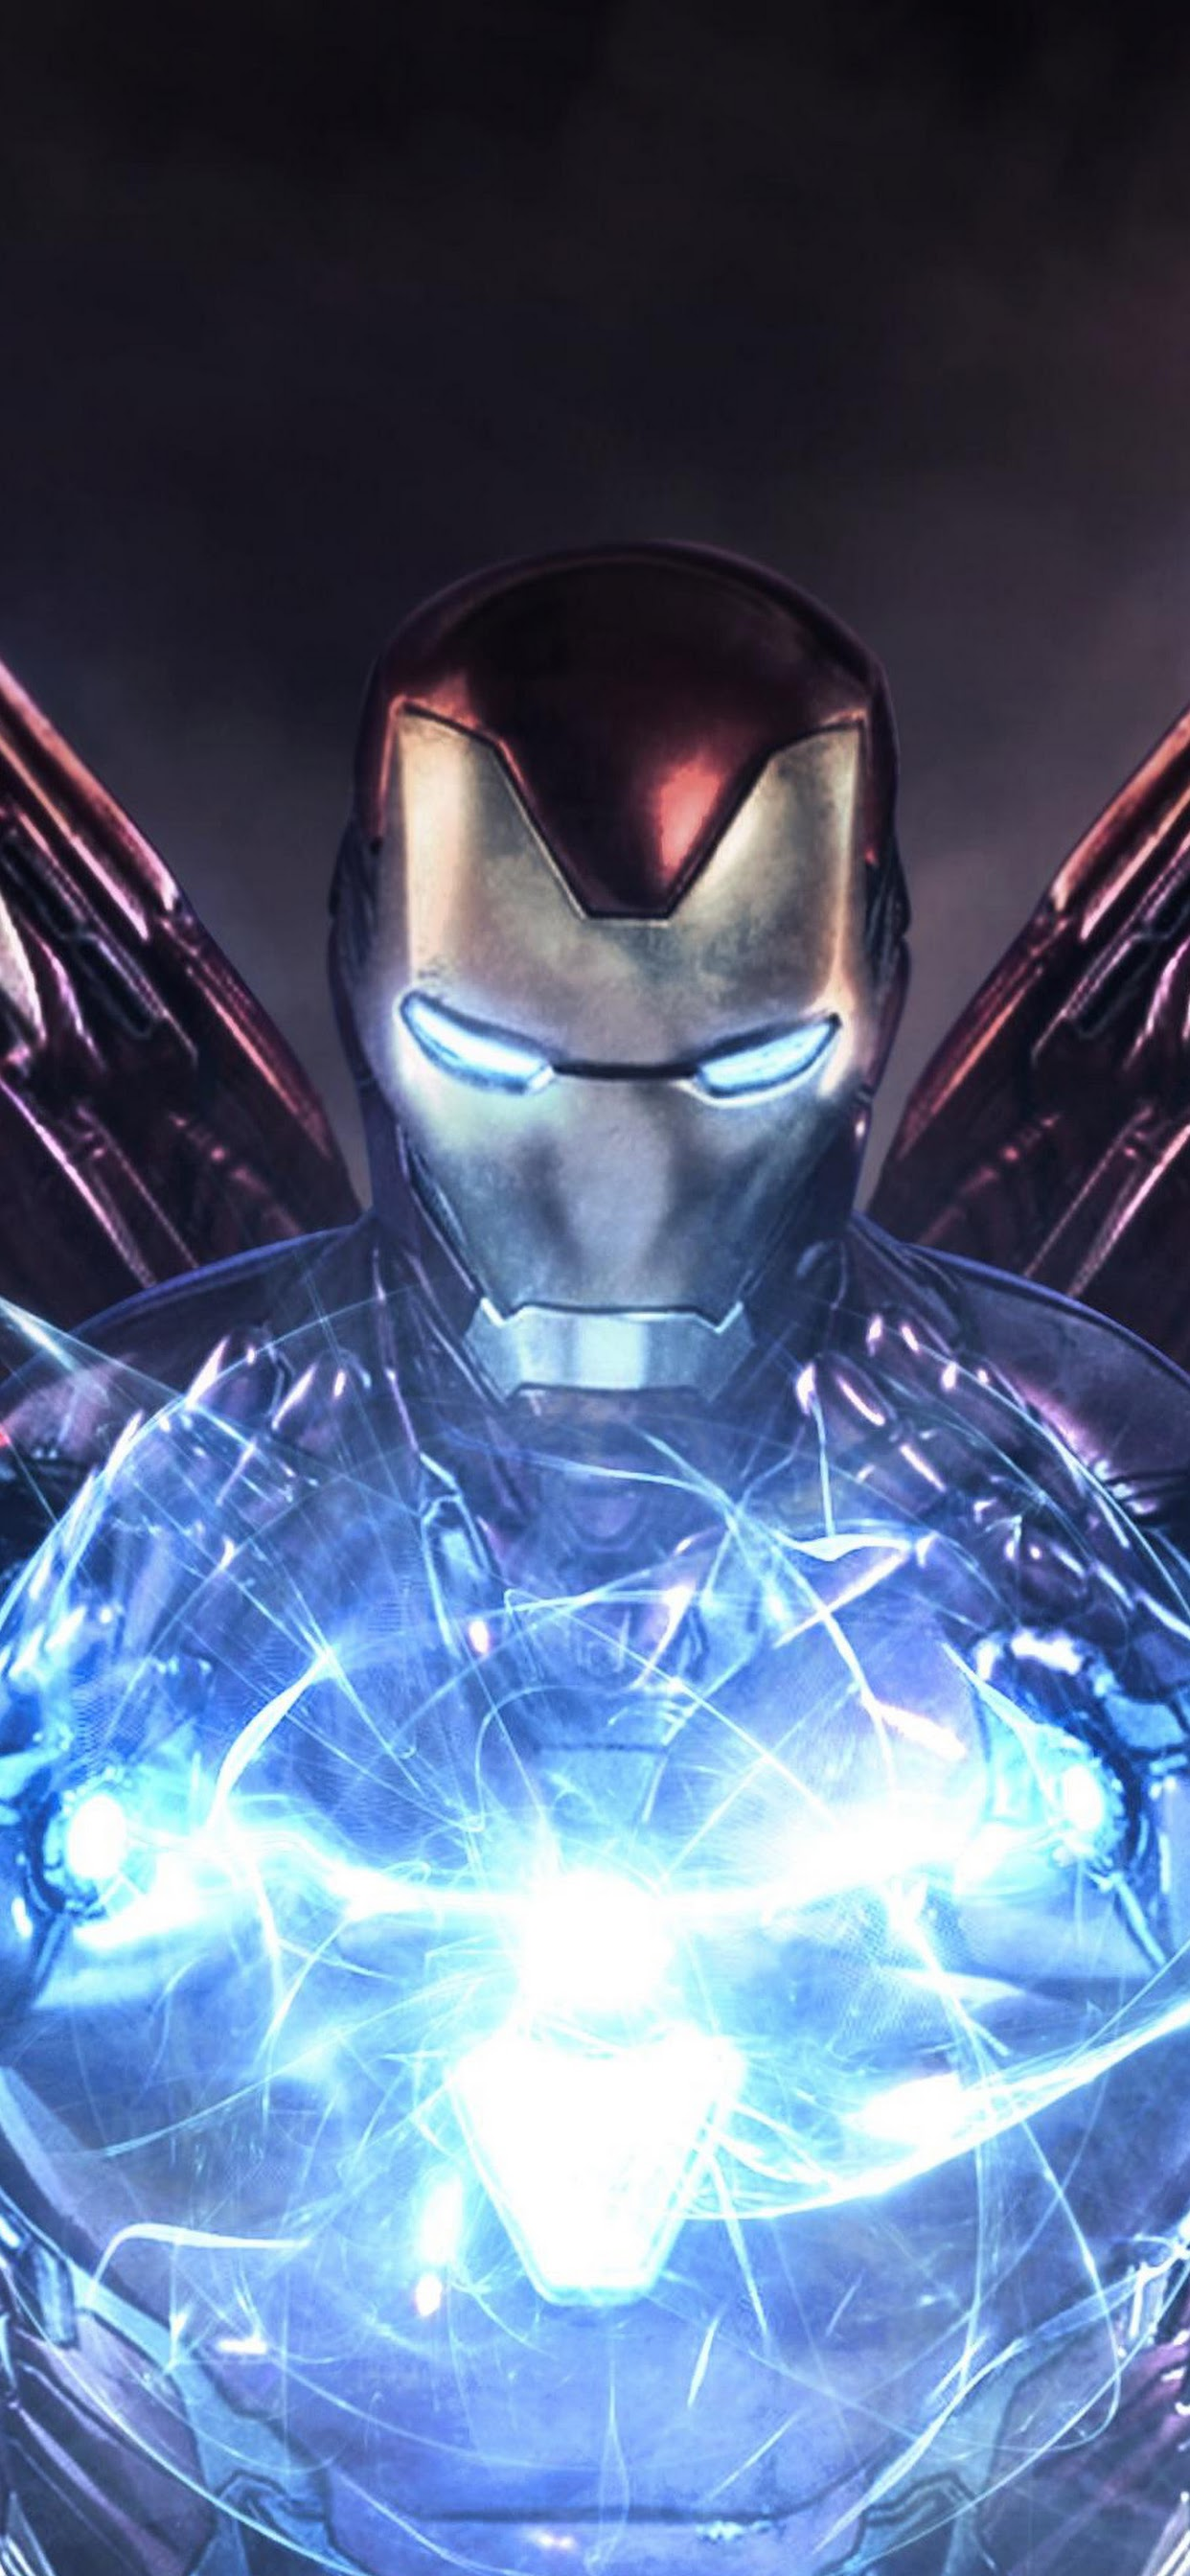 Avengers Endgame Iron Man 4k Wallpaper 120